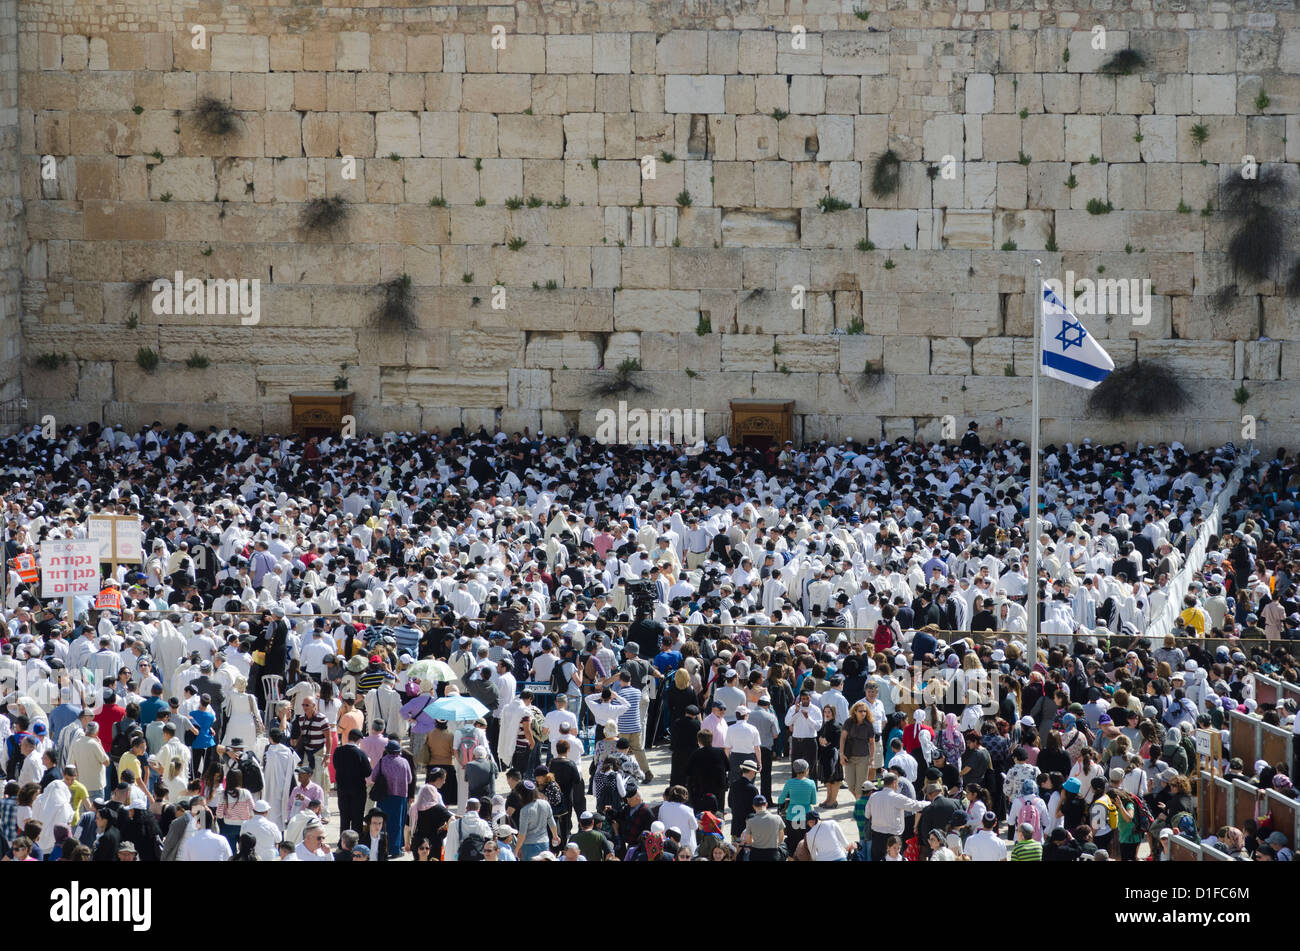 Traditional Cohen's Benediction at the Western Wall during the Passover Jewish festival, Jerusalem Old City, - Stock Image